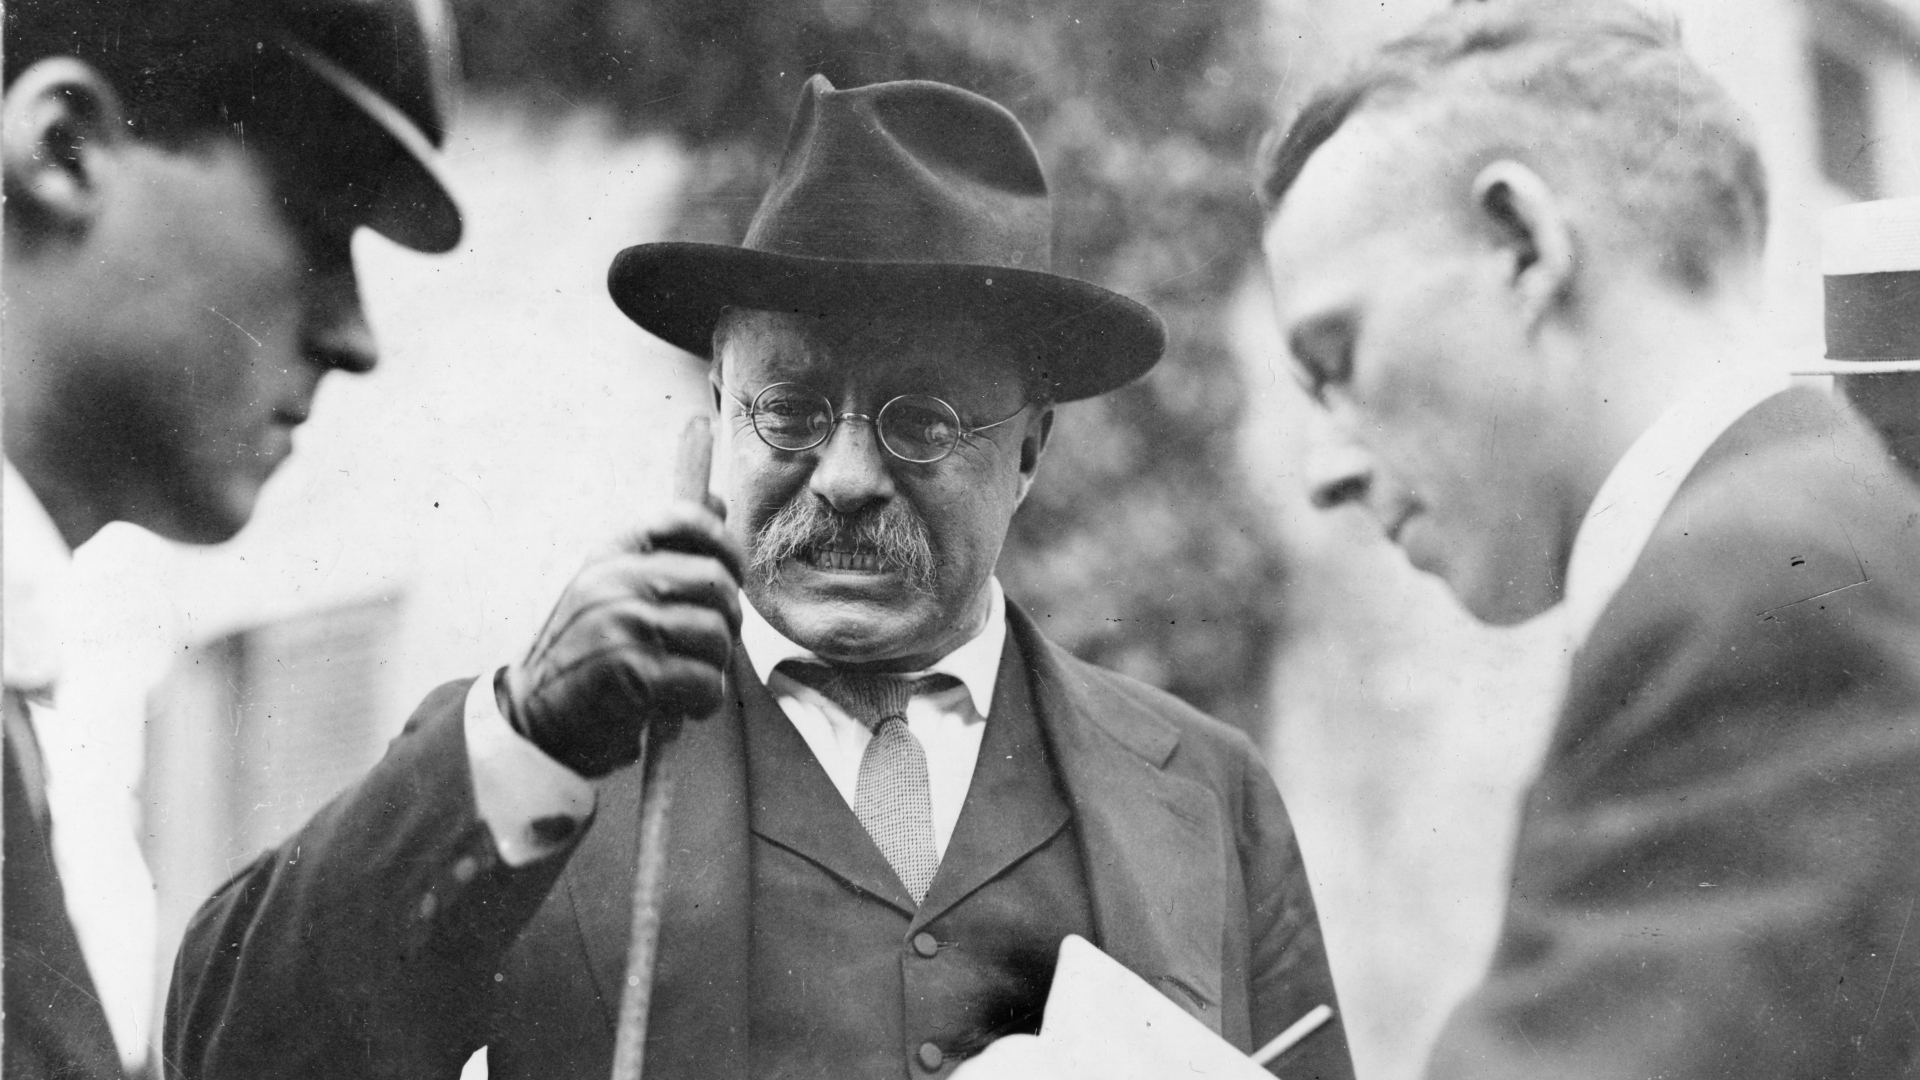 US President Theodore Roosevelt clenching his teeth as he makes a point during an interview with unidentified journalists. (Credit: PhotoQuest/Getty Images)